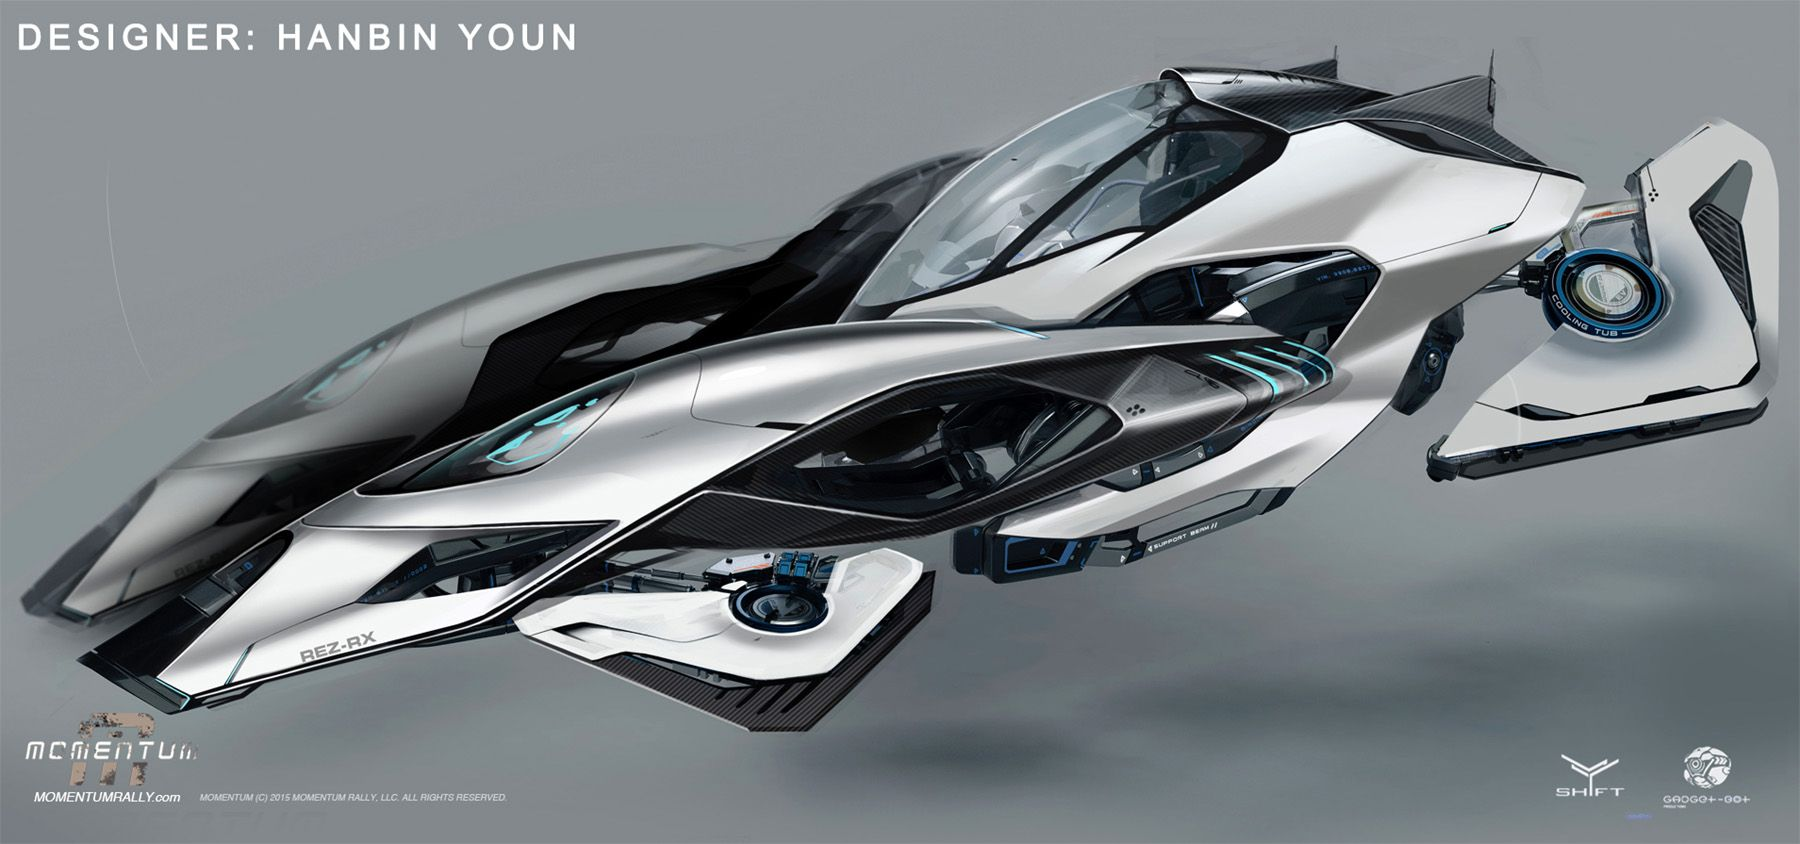 Concept ships vehicle designs from momentum concept art for Space concept